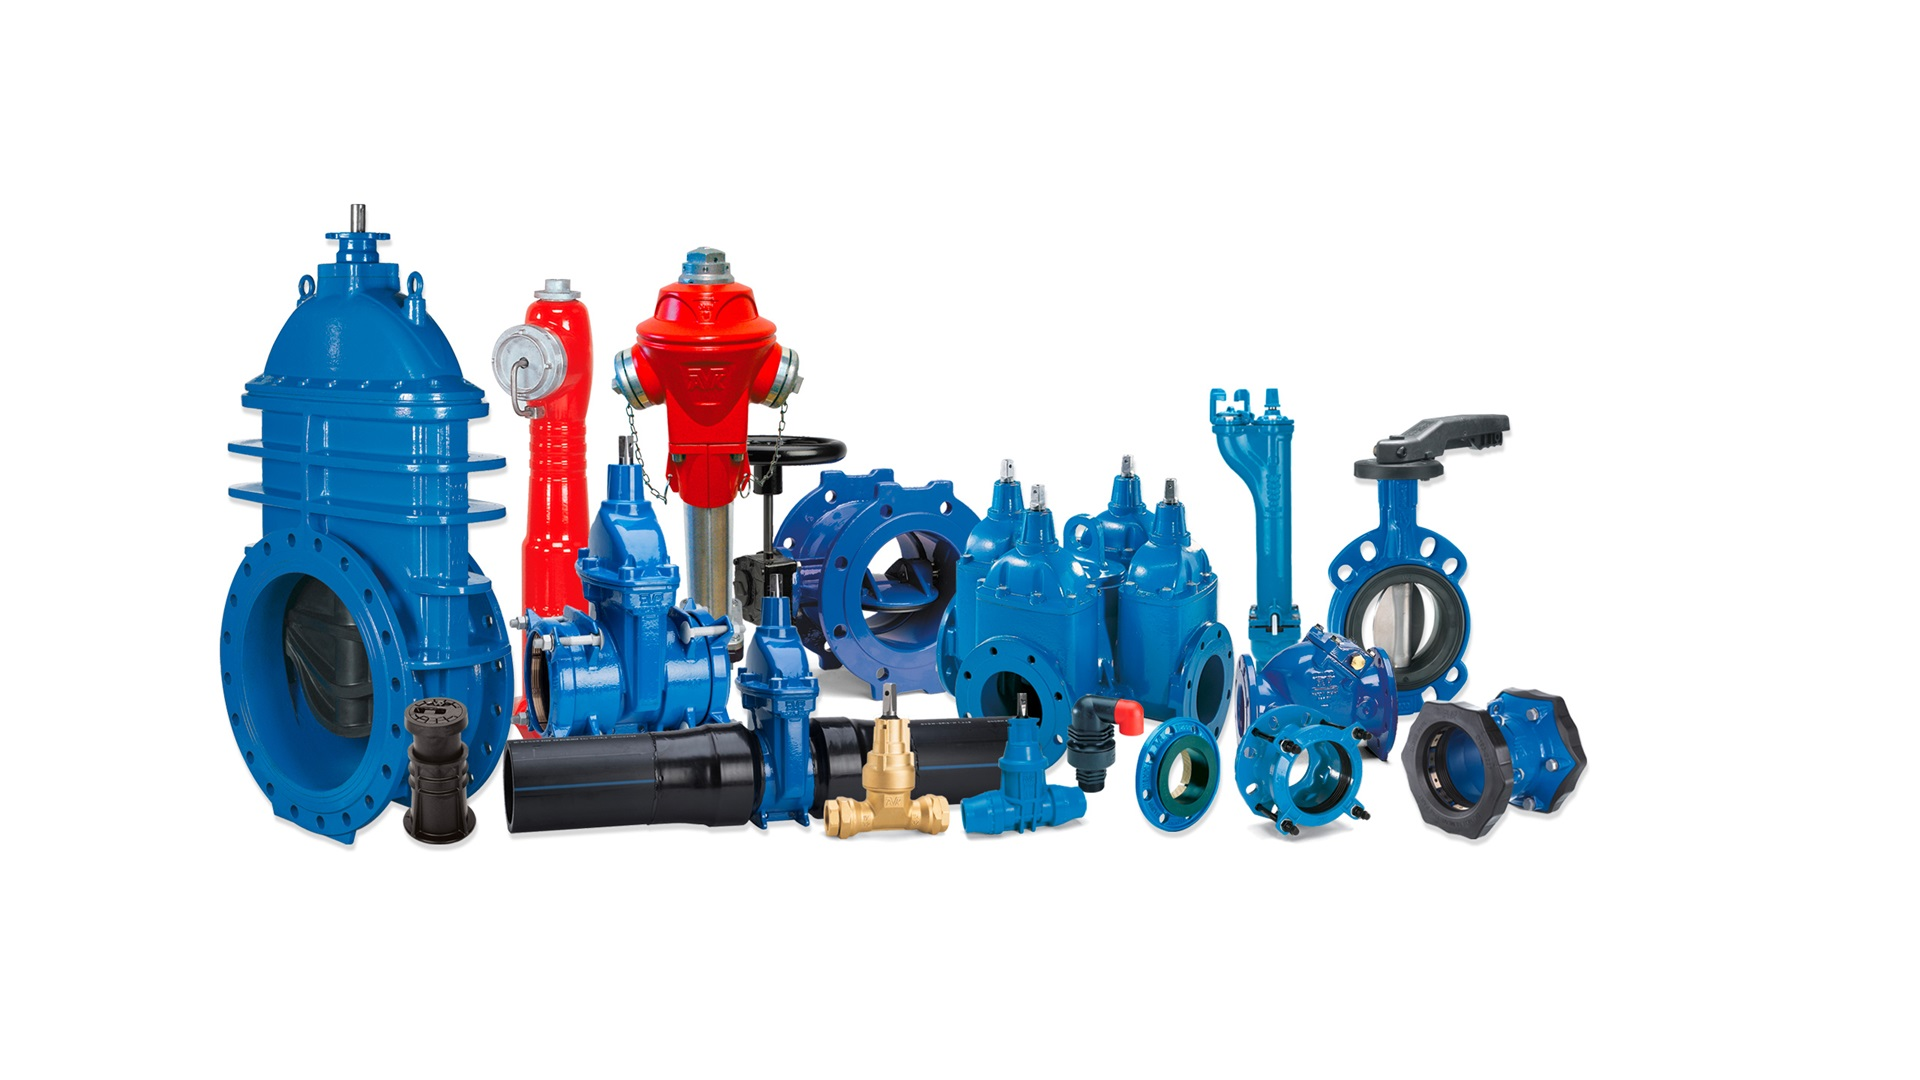 Water, Hight Quality, AVK, Valves, Solutions, QUALITY, SUSTAINABILITY, Environment, Corporate social responsibility, gate valves and accessories, butterfly valves, swing check valves, air valves, control valves, hydrants, couplings, fittings